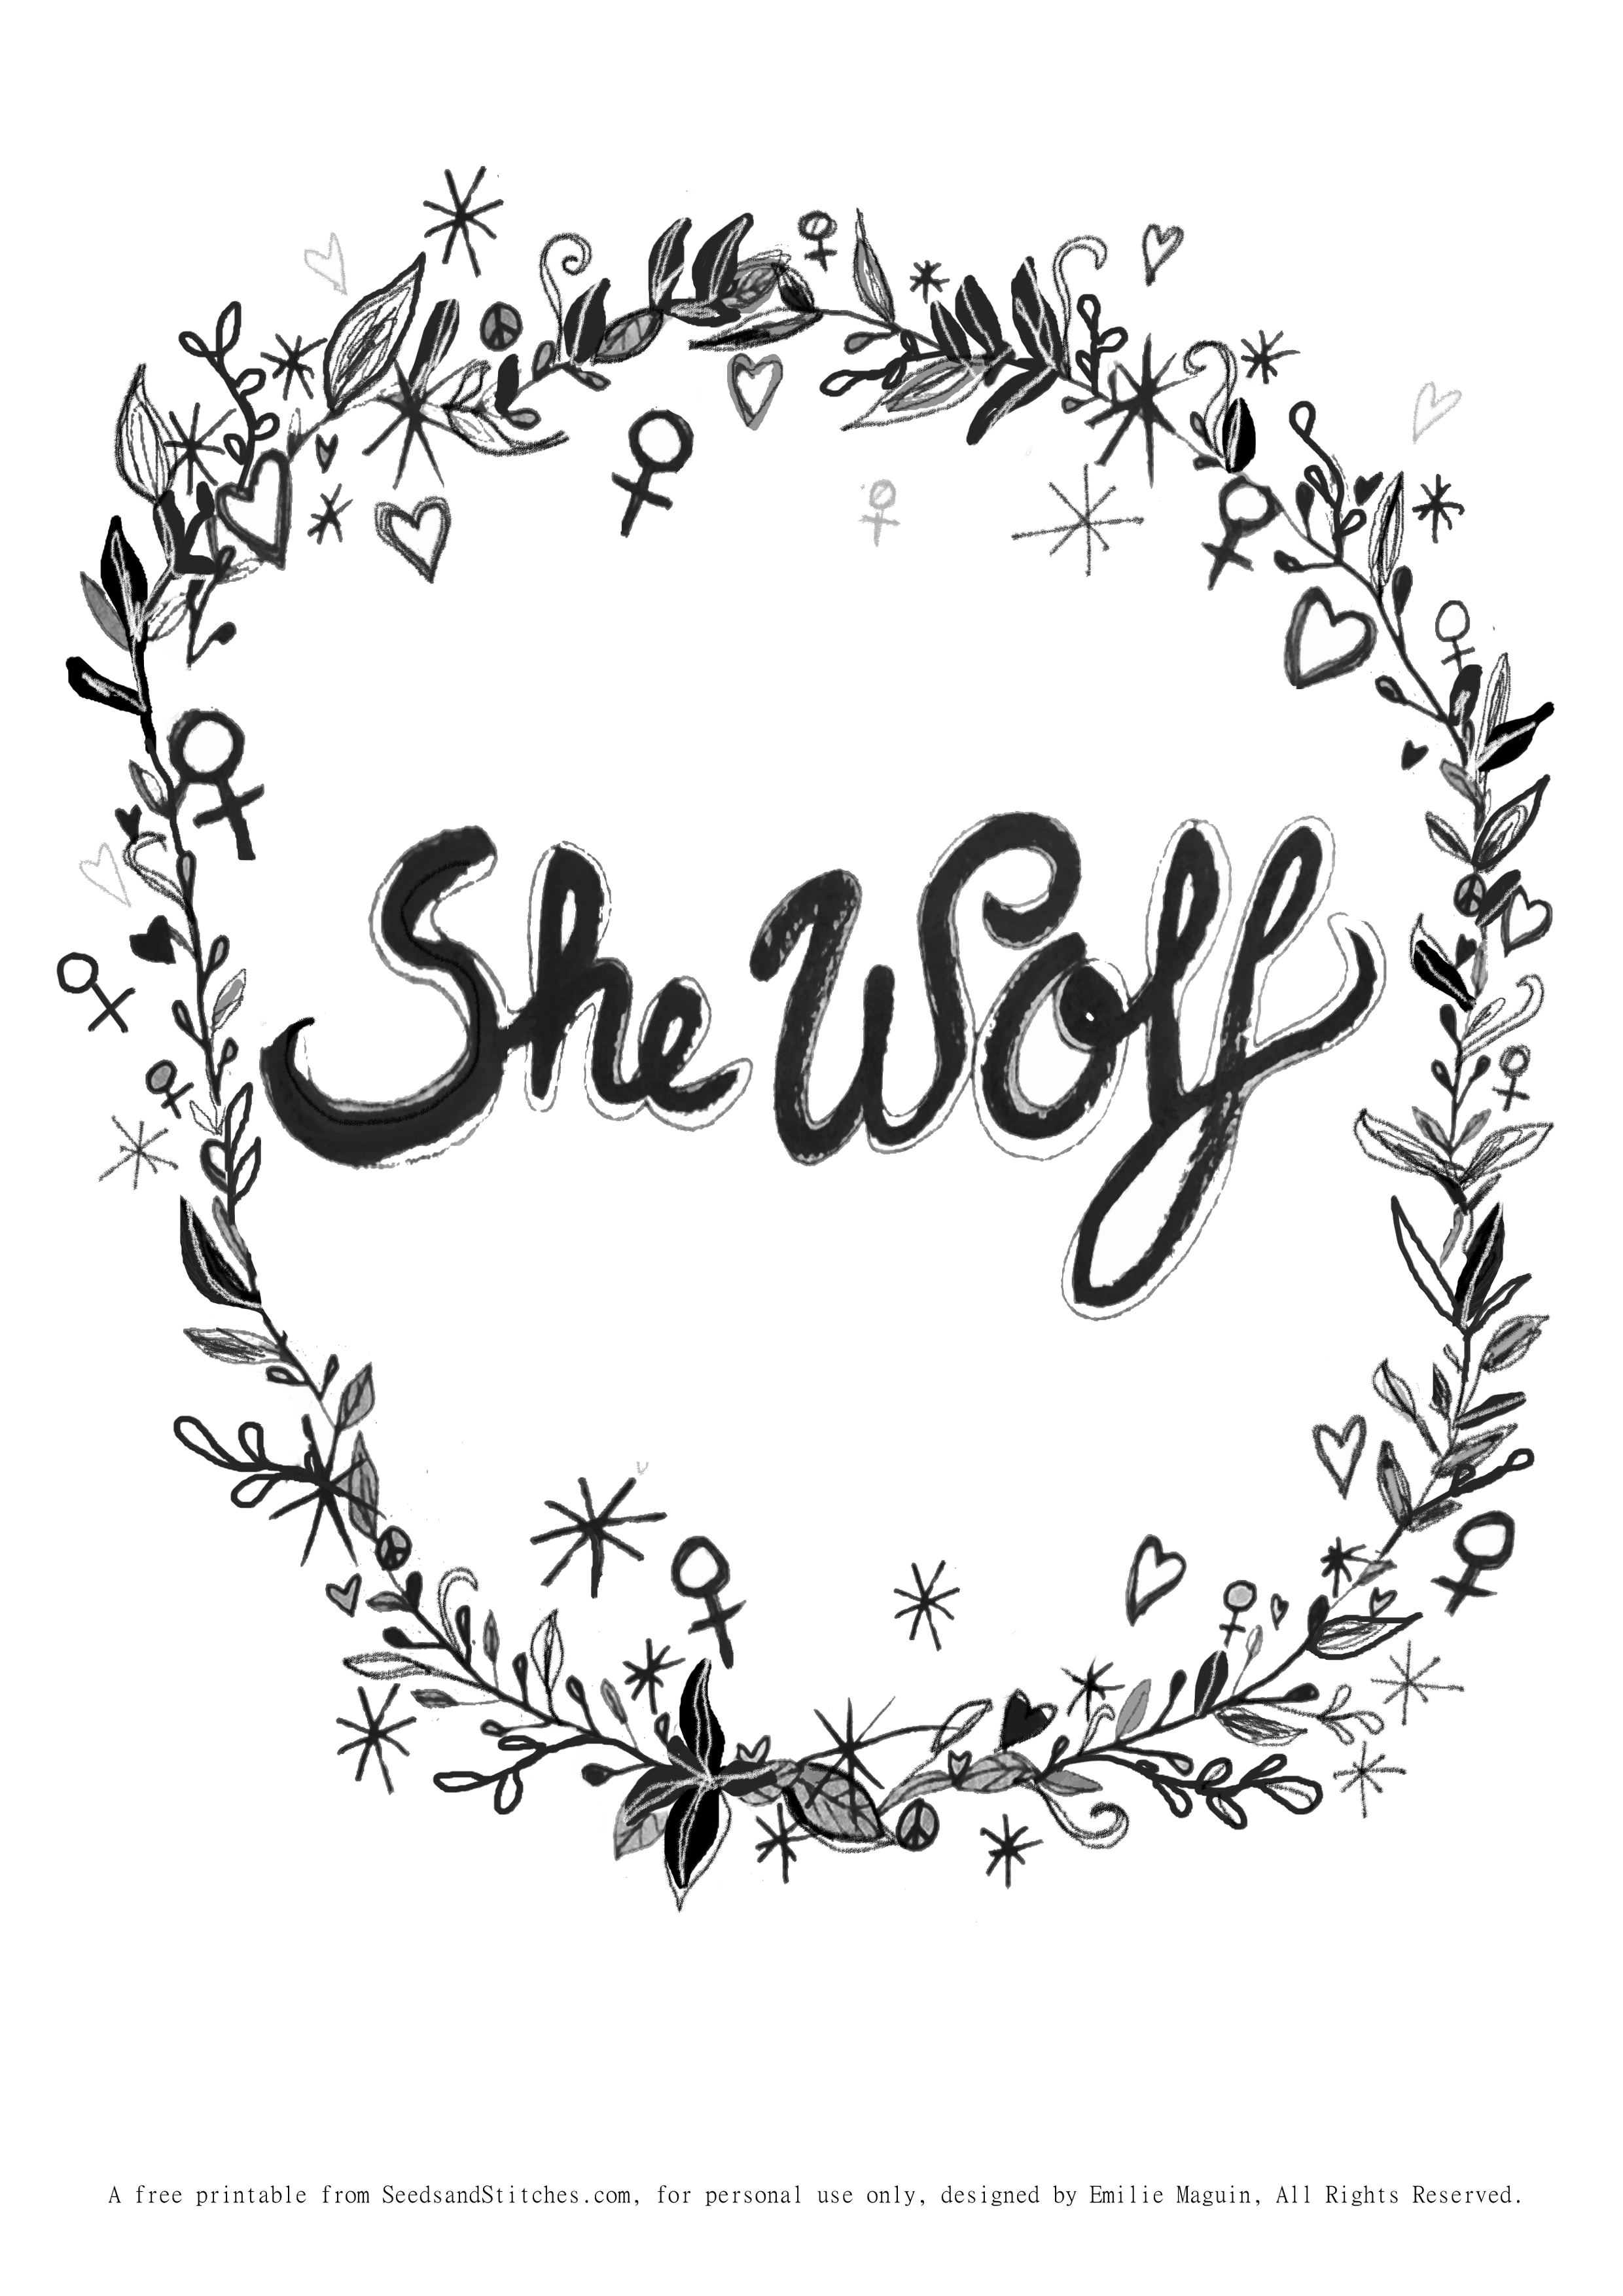 She Wolf, Galantines Day free printable by Emilie Maguin for Seeds and Stitches blog